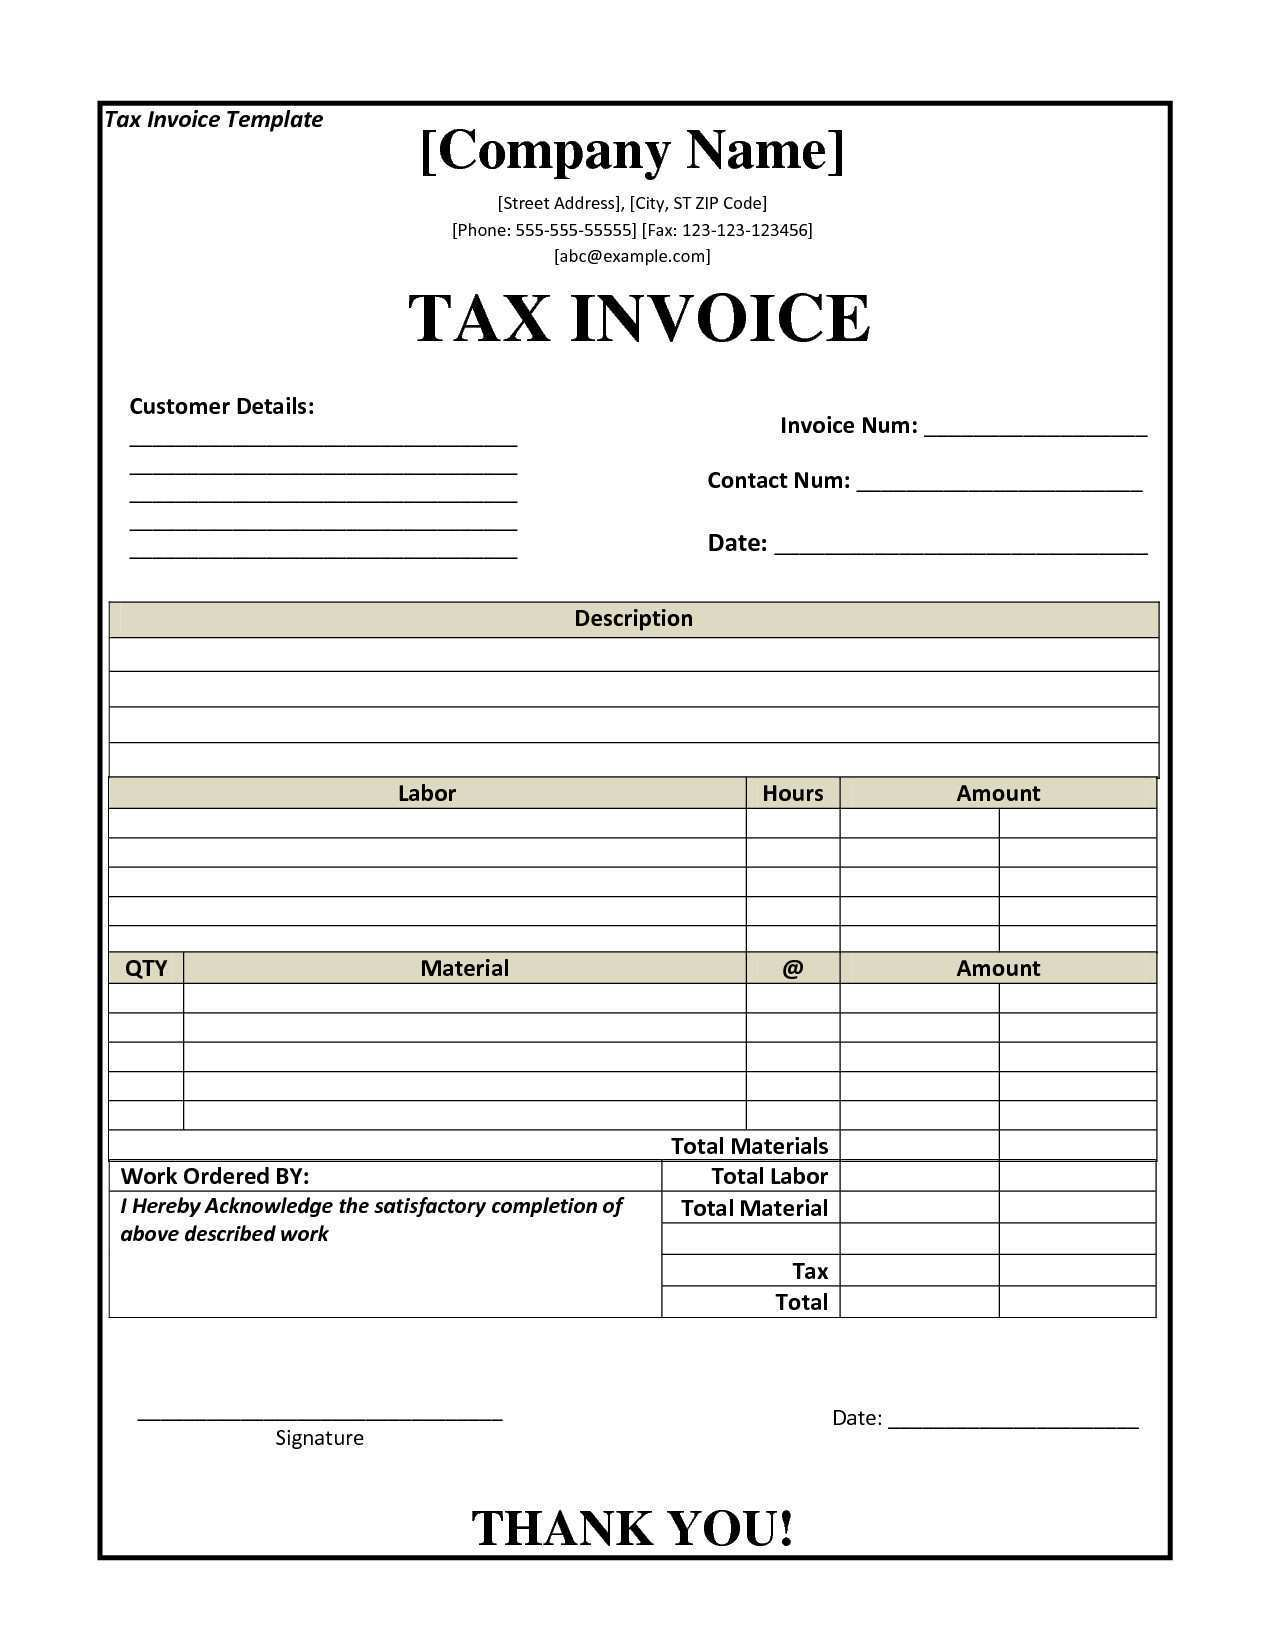 14 How To Create Australian Tax Invoice Template Pdf Maker by Australian Tax Invoice Template Pdf